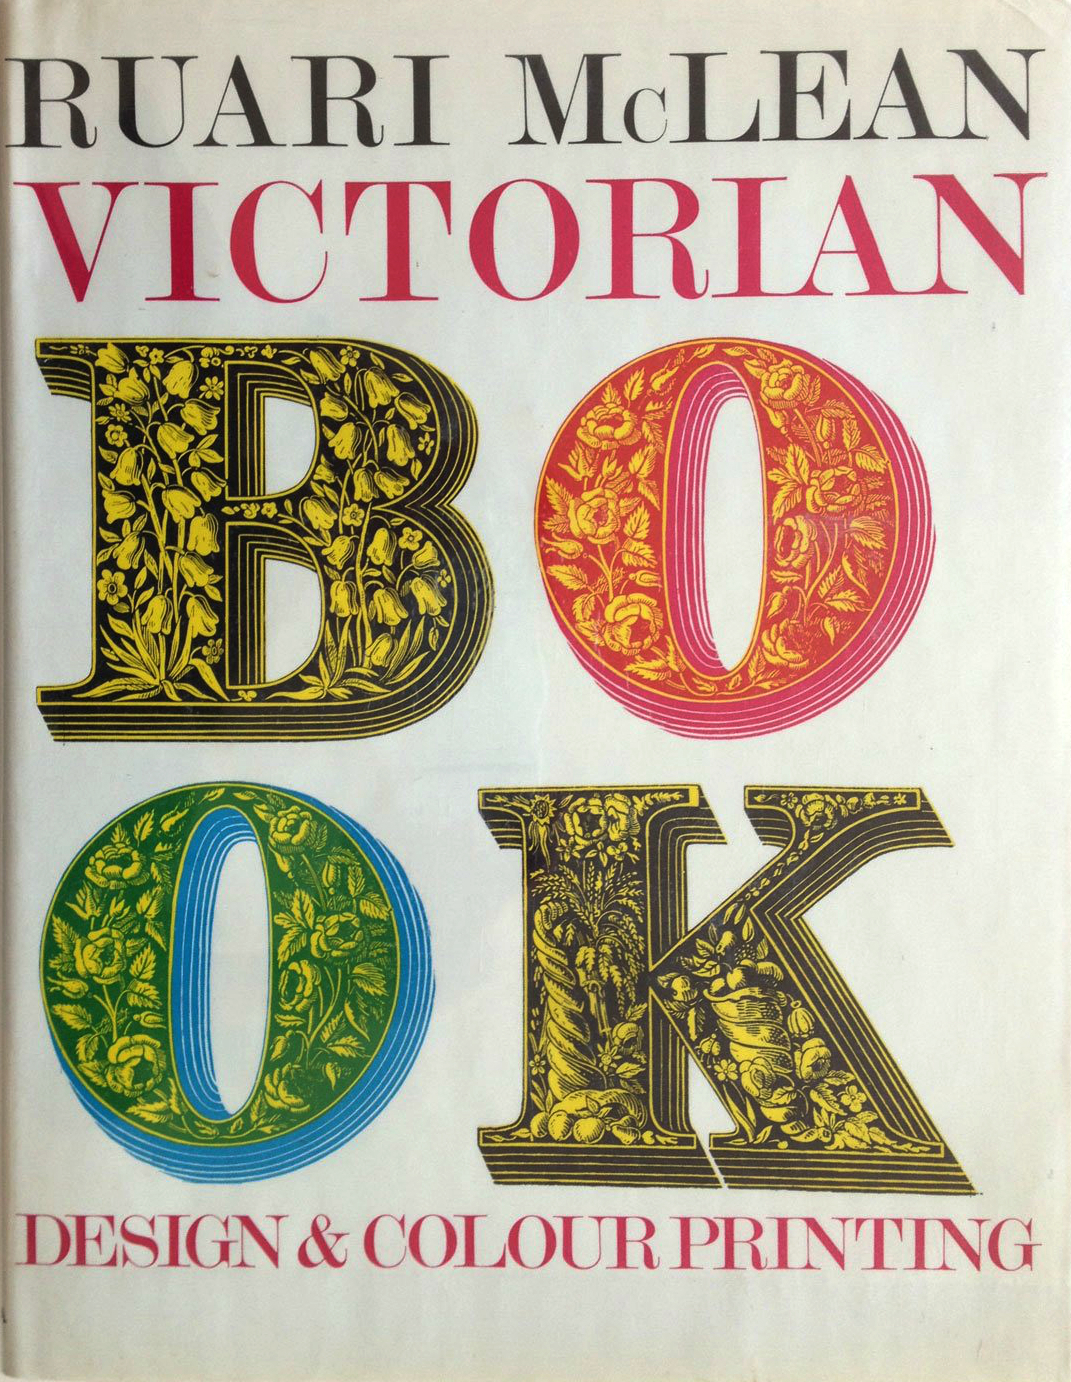 Victorian Book Design and Colour Printing